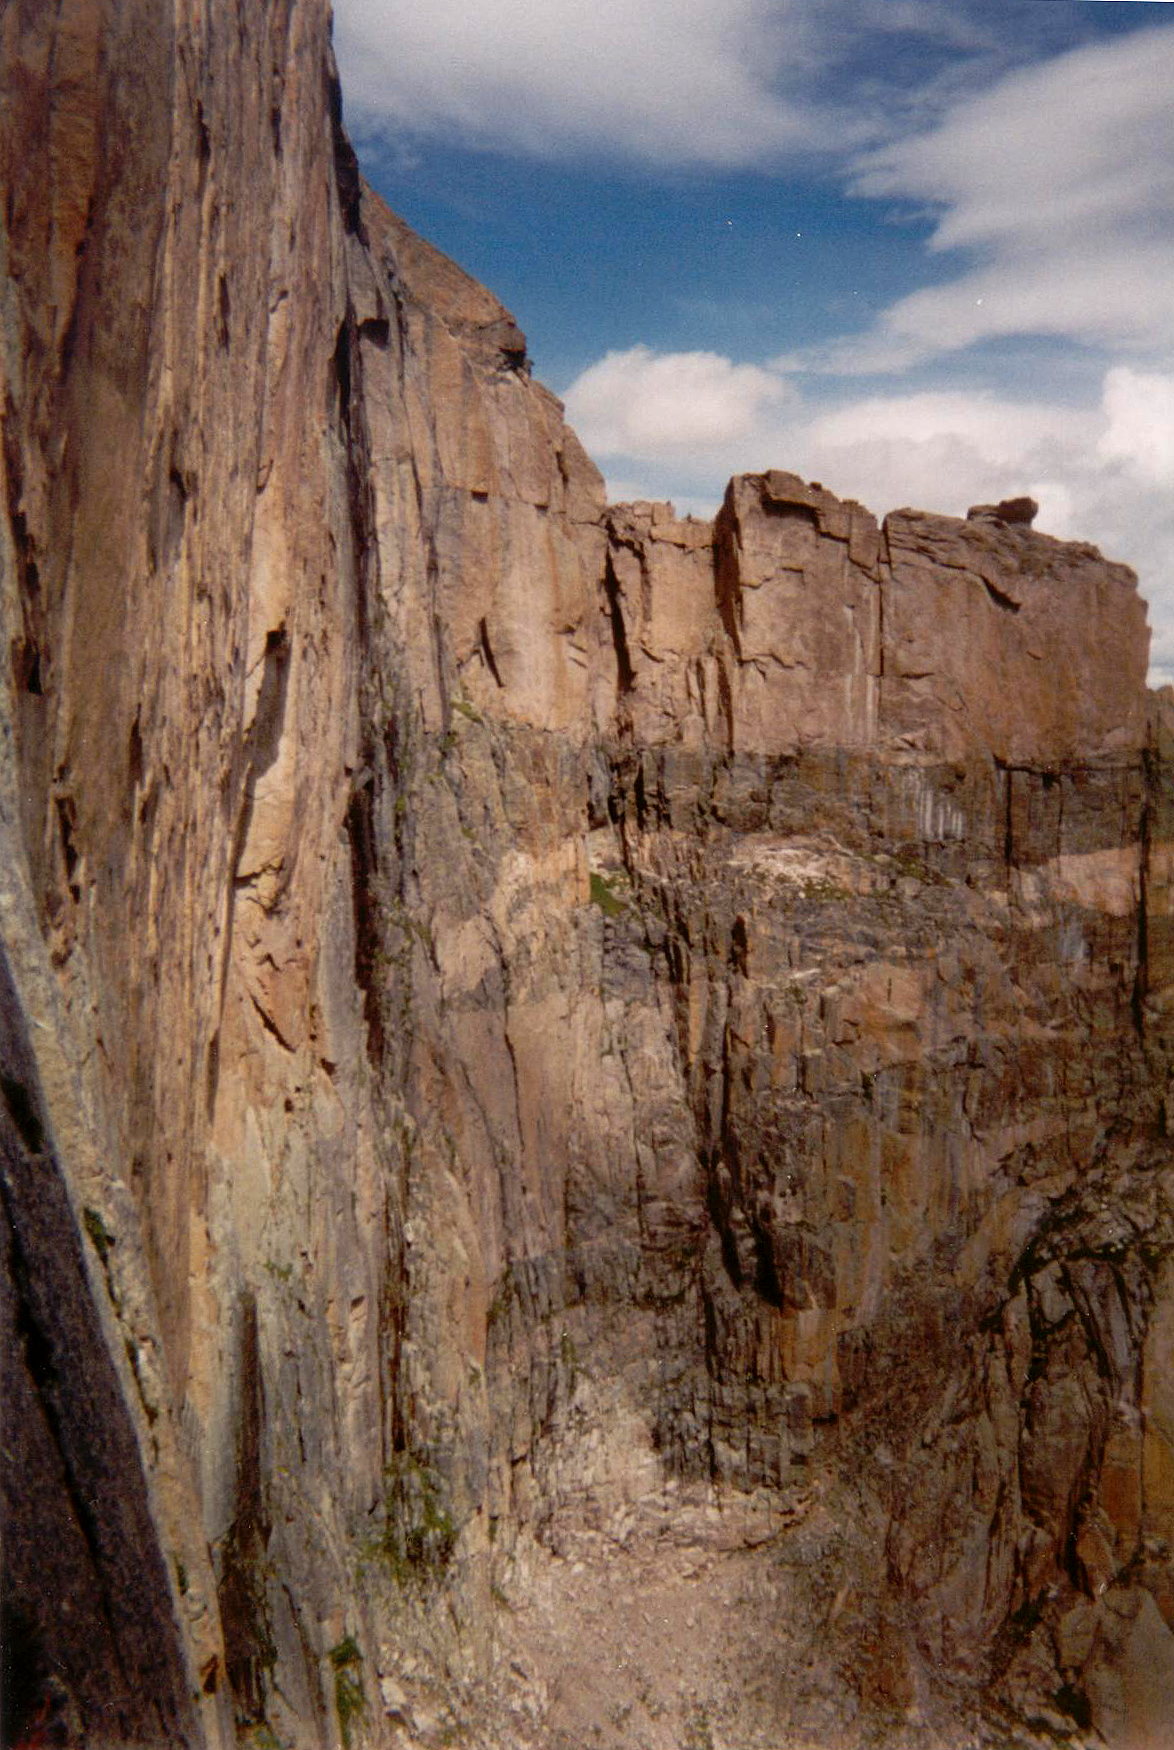 A view of the Chasm View rappel area from the start of the Casual Route; 3 150 foot rappels to descend to Broadway Ledge.